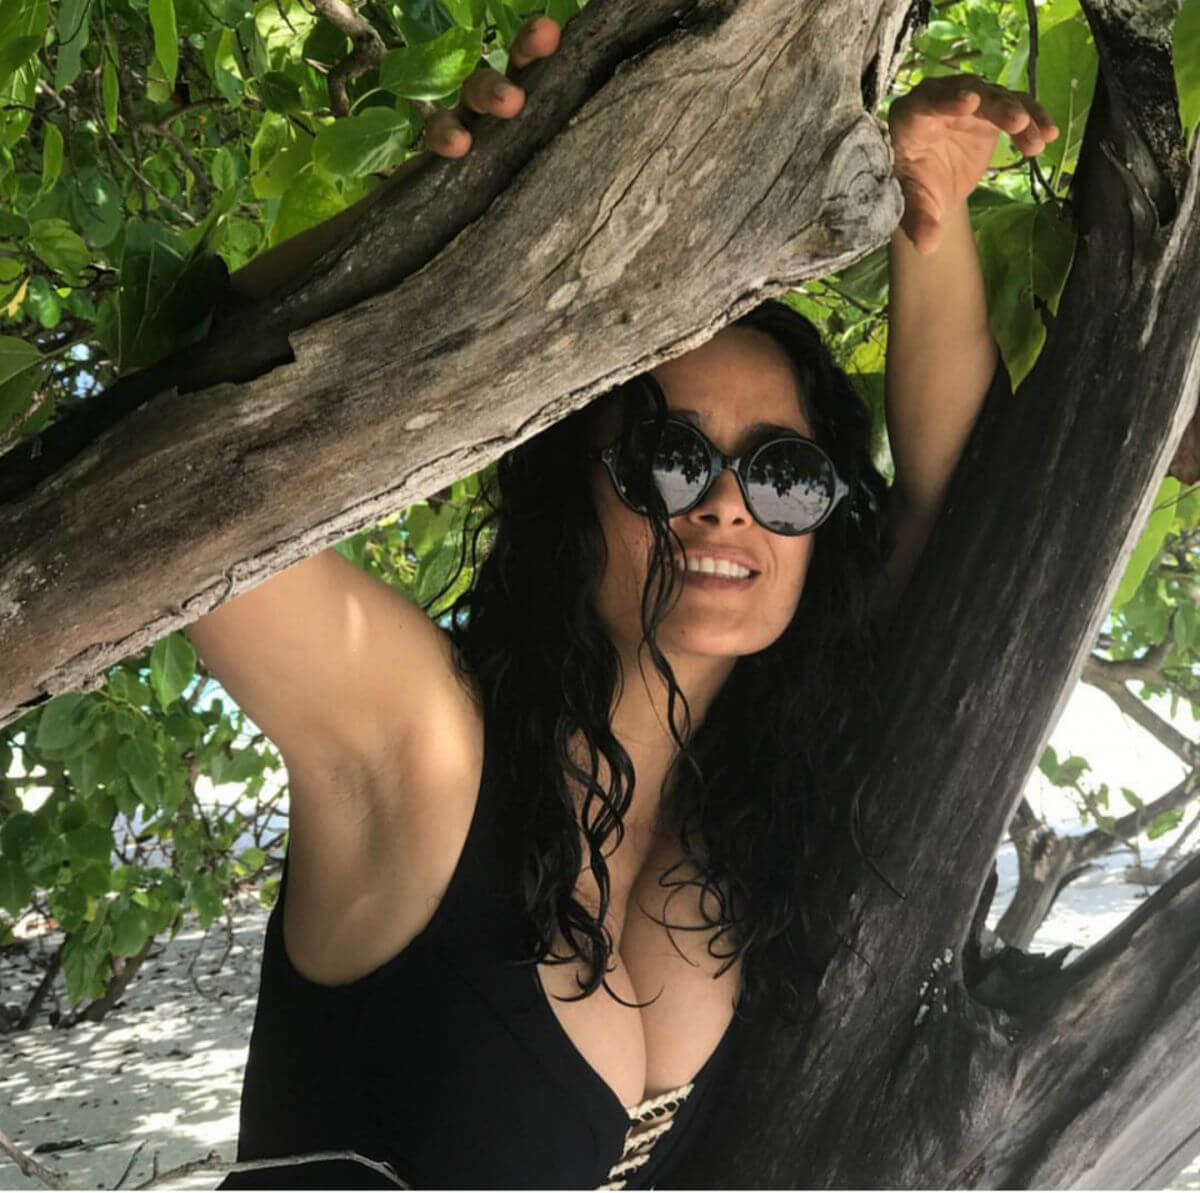 Salma Hayek on Instagram Picture 2018/12/29 1